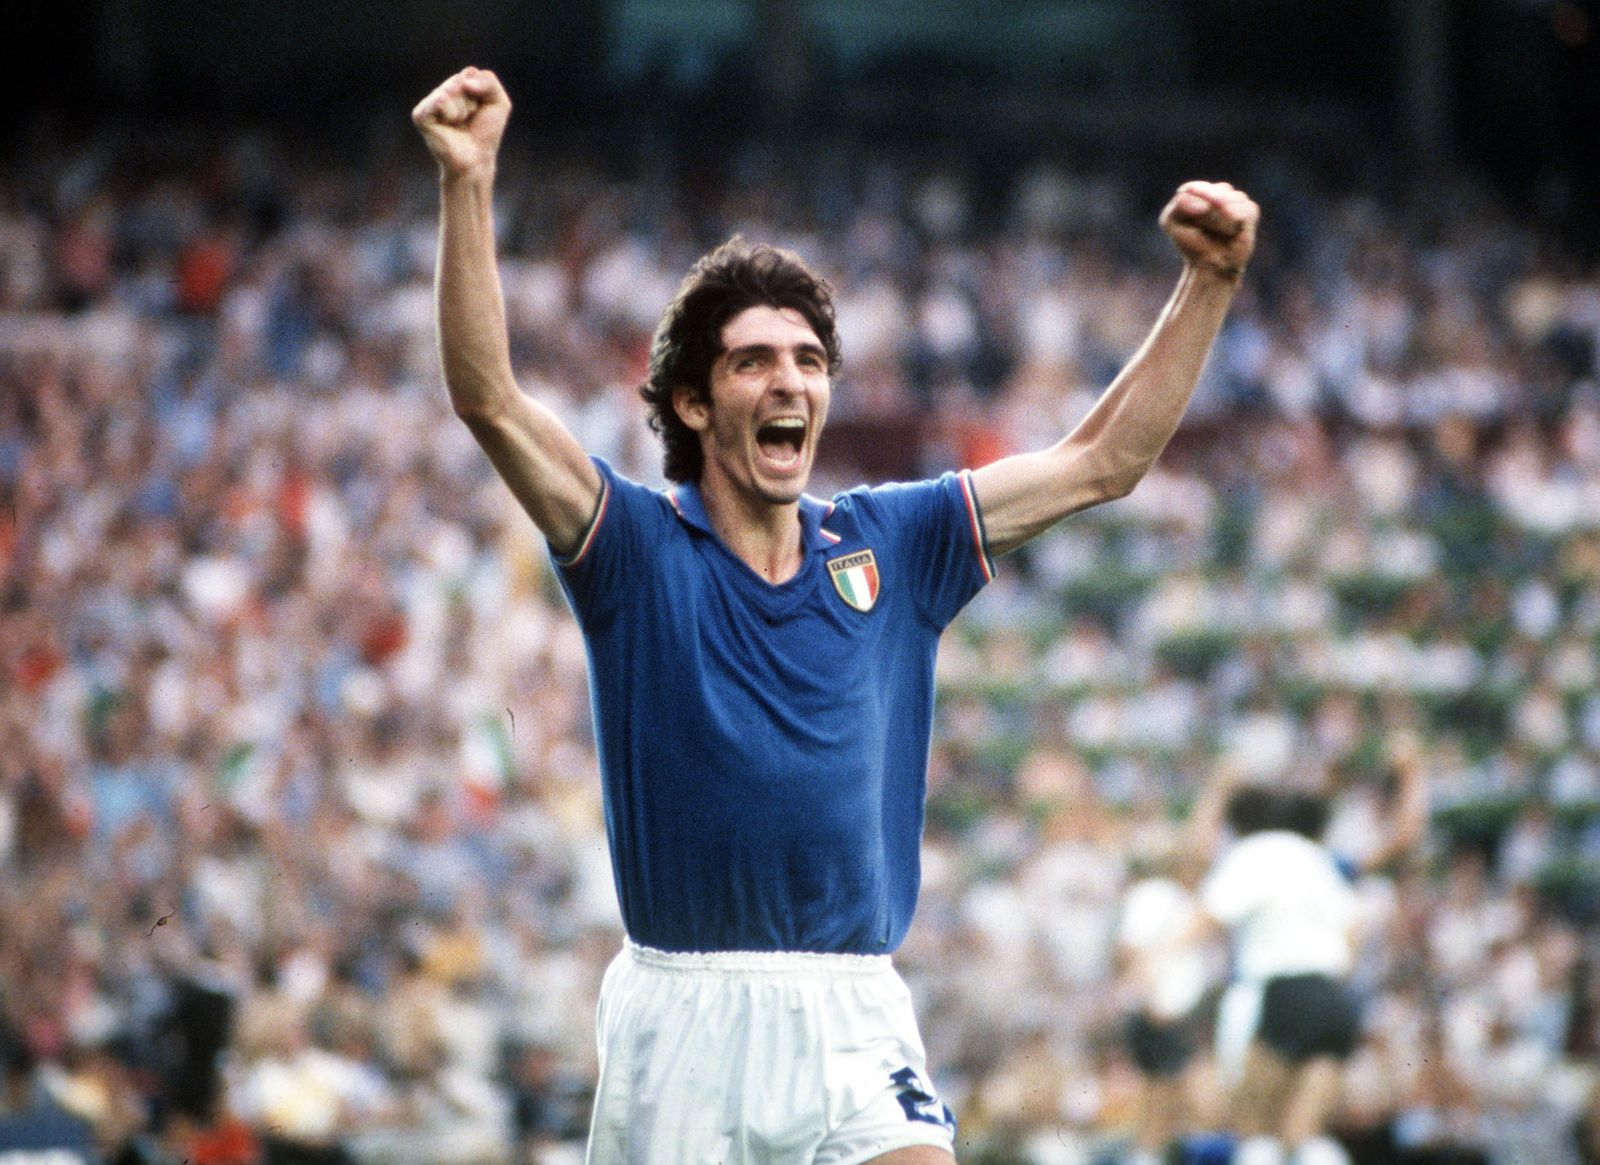 1982 World Cup Final. Madrid, Spain. 11th July, 1982. Italy 3 v West Germany 1. Italy's Paolo Rossi celebrates after scoring the opening goal in the World Cup Final.